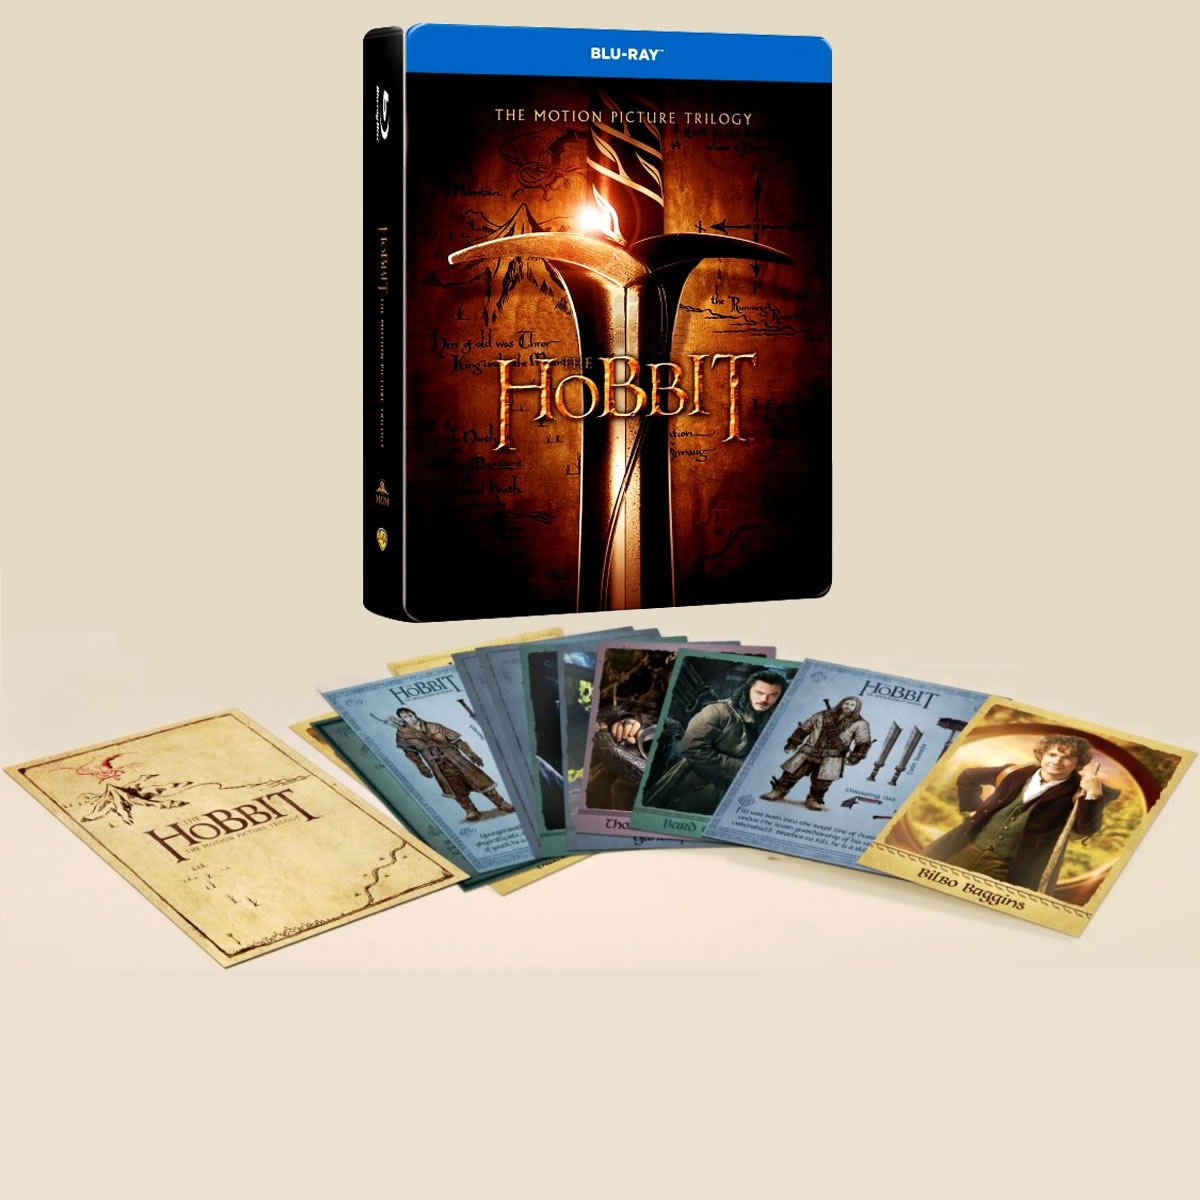 THE HOBBIT: THE MOTION PICTURE TRILOGY + 20x CHARACTER CARDS - ΧΟΜΠΙΤ: Η ΤΡΙΛΟΓΙΑ + 20x ΚΑΡΤΕΣ ΧΑΡΑΚΤΗΡΩΝ Limited Collector's Edition Steelbook [Εισαγωγής ΜΕ ΕΛΛΗΝΙΚΟΥΣ ΥΠΟΤΙΤΛΟΥΣ] (6 BLU-RAYs)